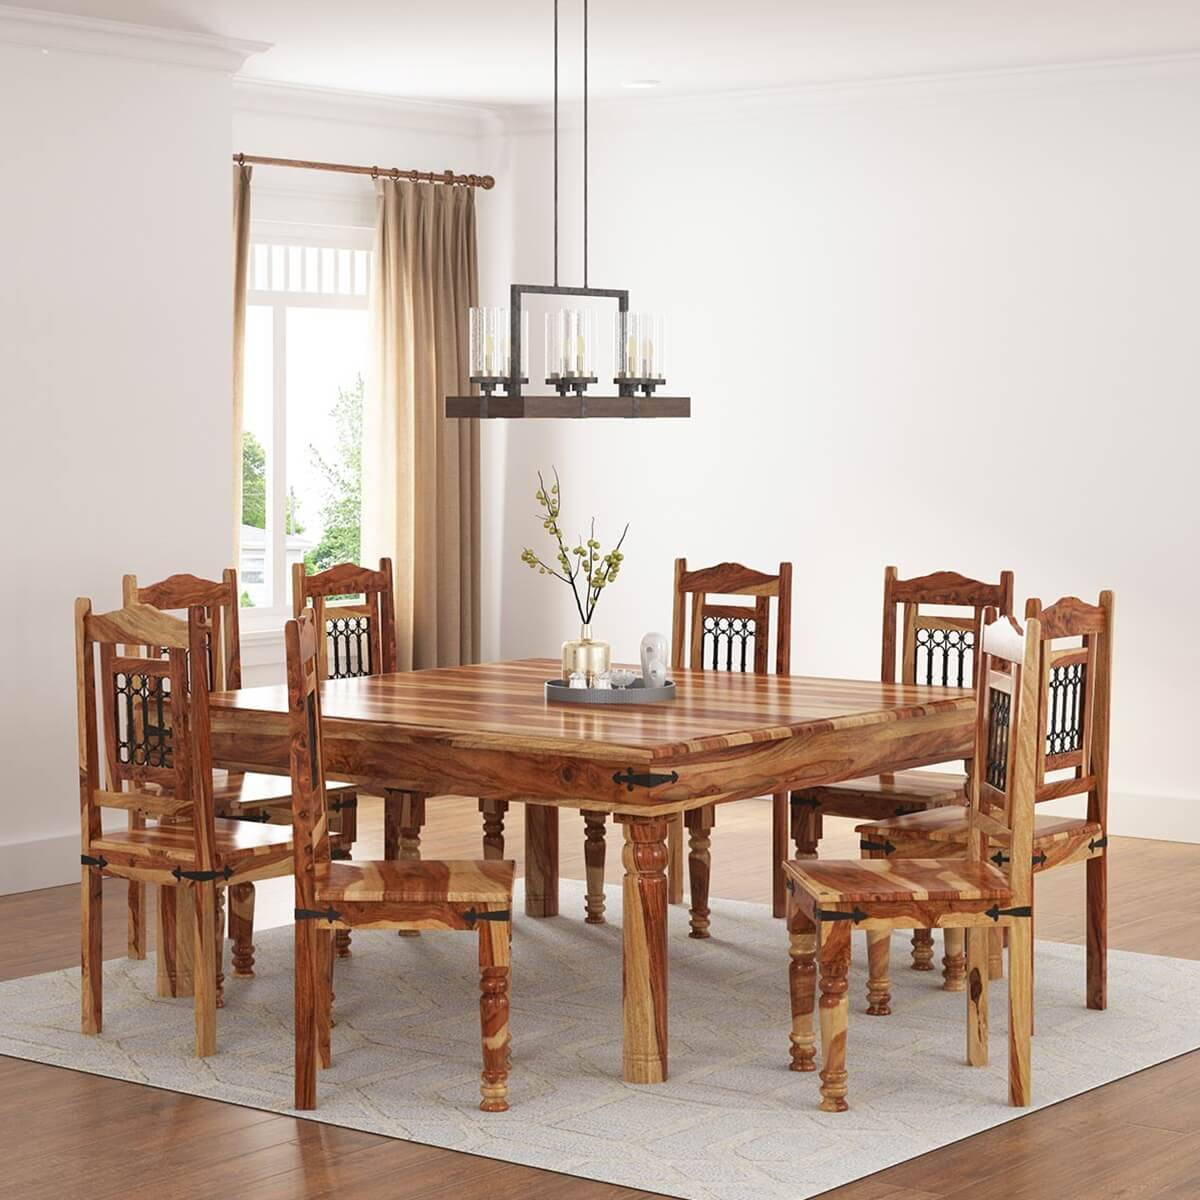 Peoria solid wood large square dining table chair set for Solid wood dining table sets